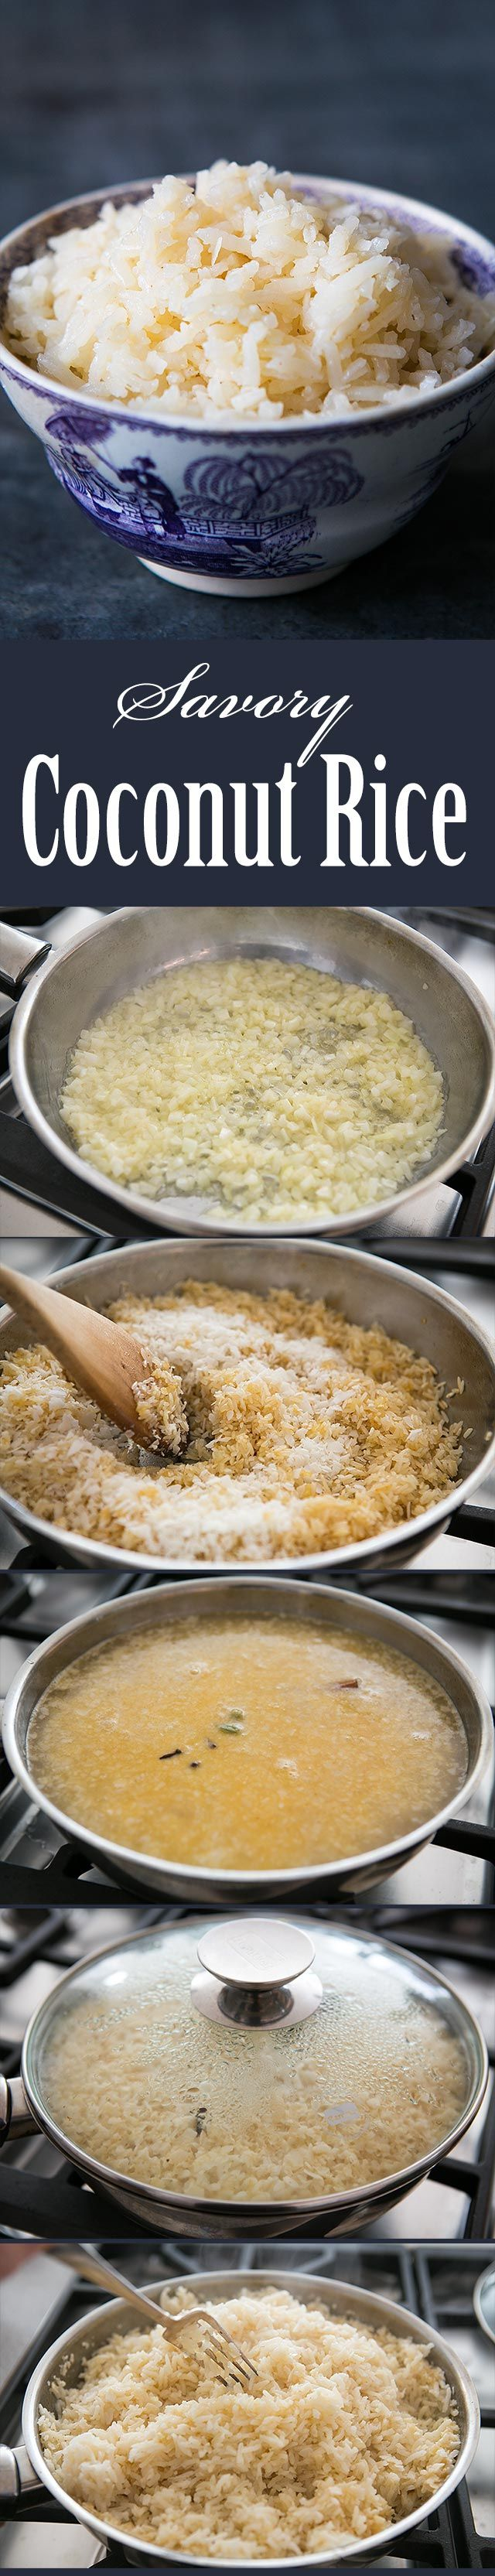 Savory Coconut Rice ~ Savory Indian-style coconut rice, with onions, garlic, grated coconut, cardamom, cloves, and cinnamon. ~ SimplyRecipes.com